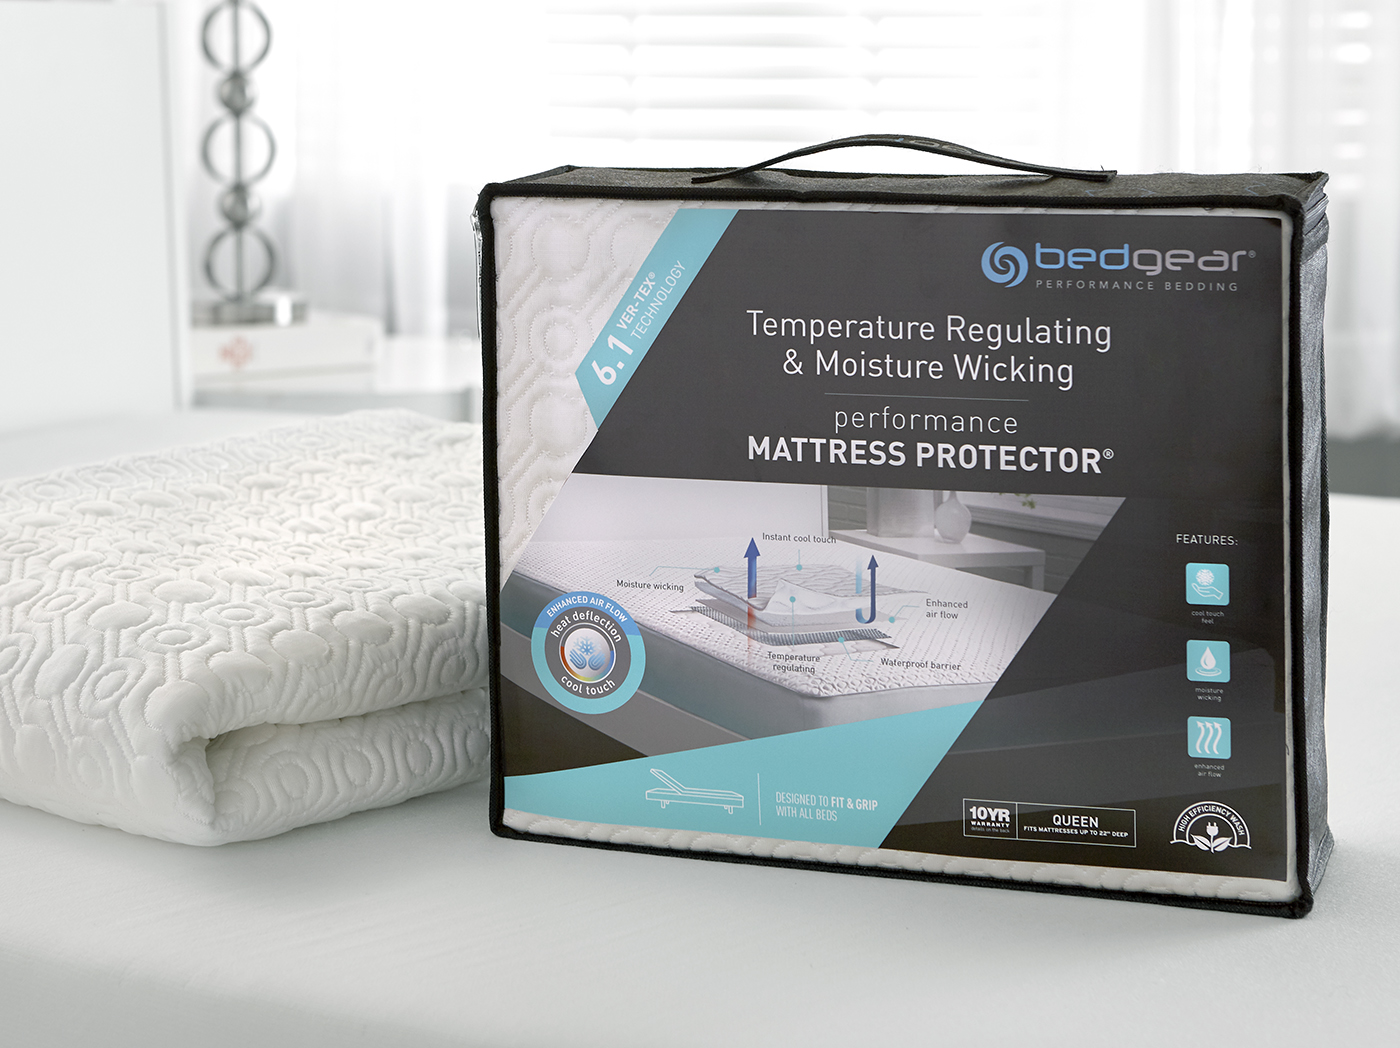 6.1 VerTex Cooling King Mattress Protector